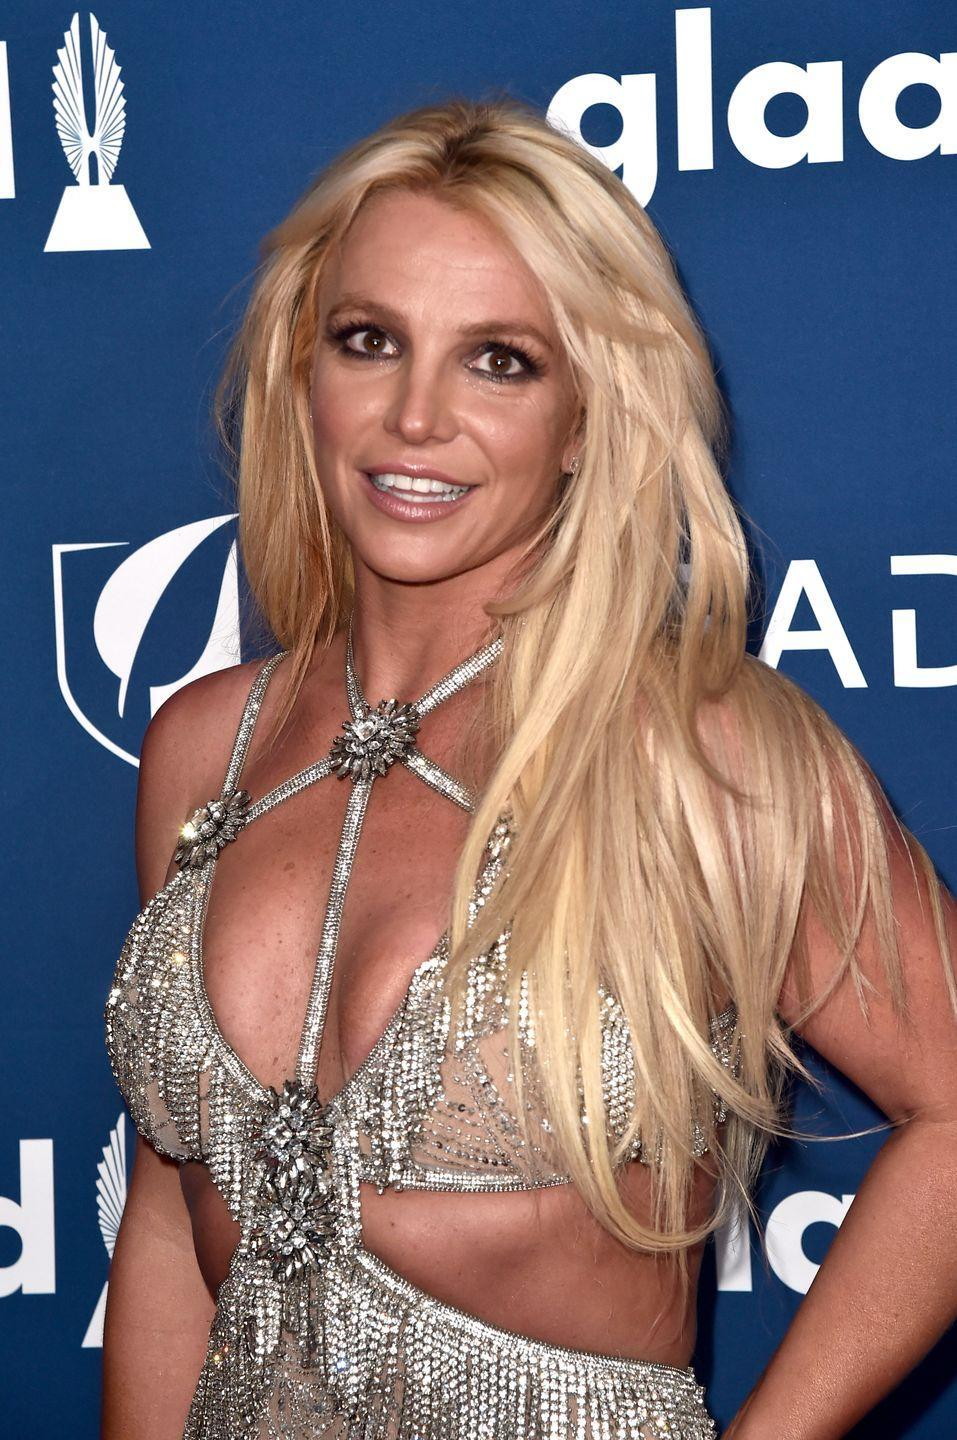 """<p>In a 2013 cover story interview with <em><a href=""""https://www.instyle.com/news/exclusive-peek-britney-spears-januarys-instyle-nowadays-im-very-critical-myself"""" rel=""""nofollow noopener"""" target=""""_blank"""" data-ylk=""""slk:InStyle"""" class=""""link rapid-noclick-resp"""">InStyle</a></em>, the singer opened about a small cosmetic tweak. """"A doctor I see, [Beverly Hills plastic surgeon] Dr. [Raj] Kanodia, does fun stuff to me sometimes—I've had lip injections before,"""" she said.</p>"""